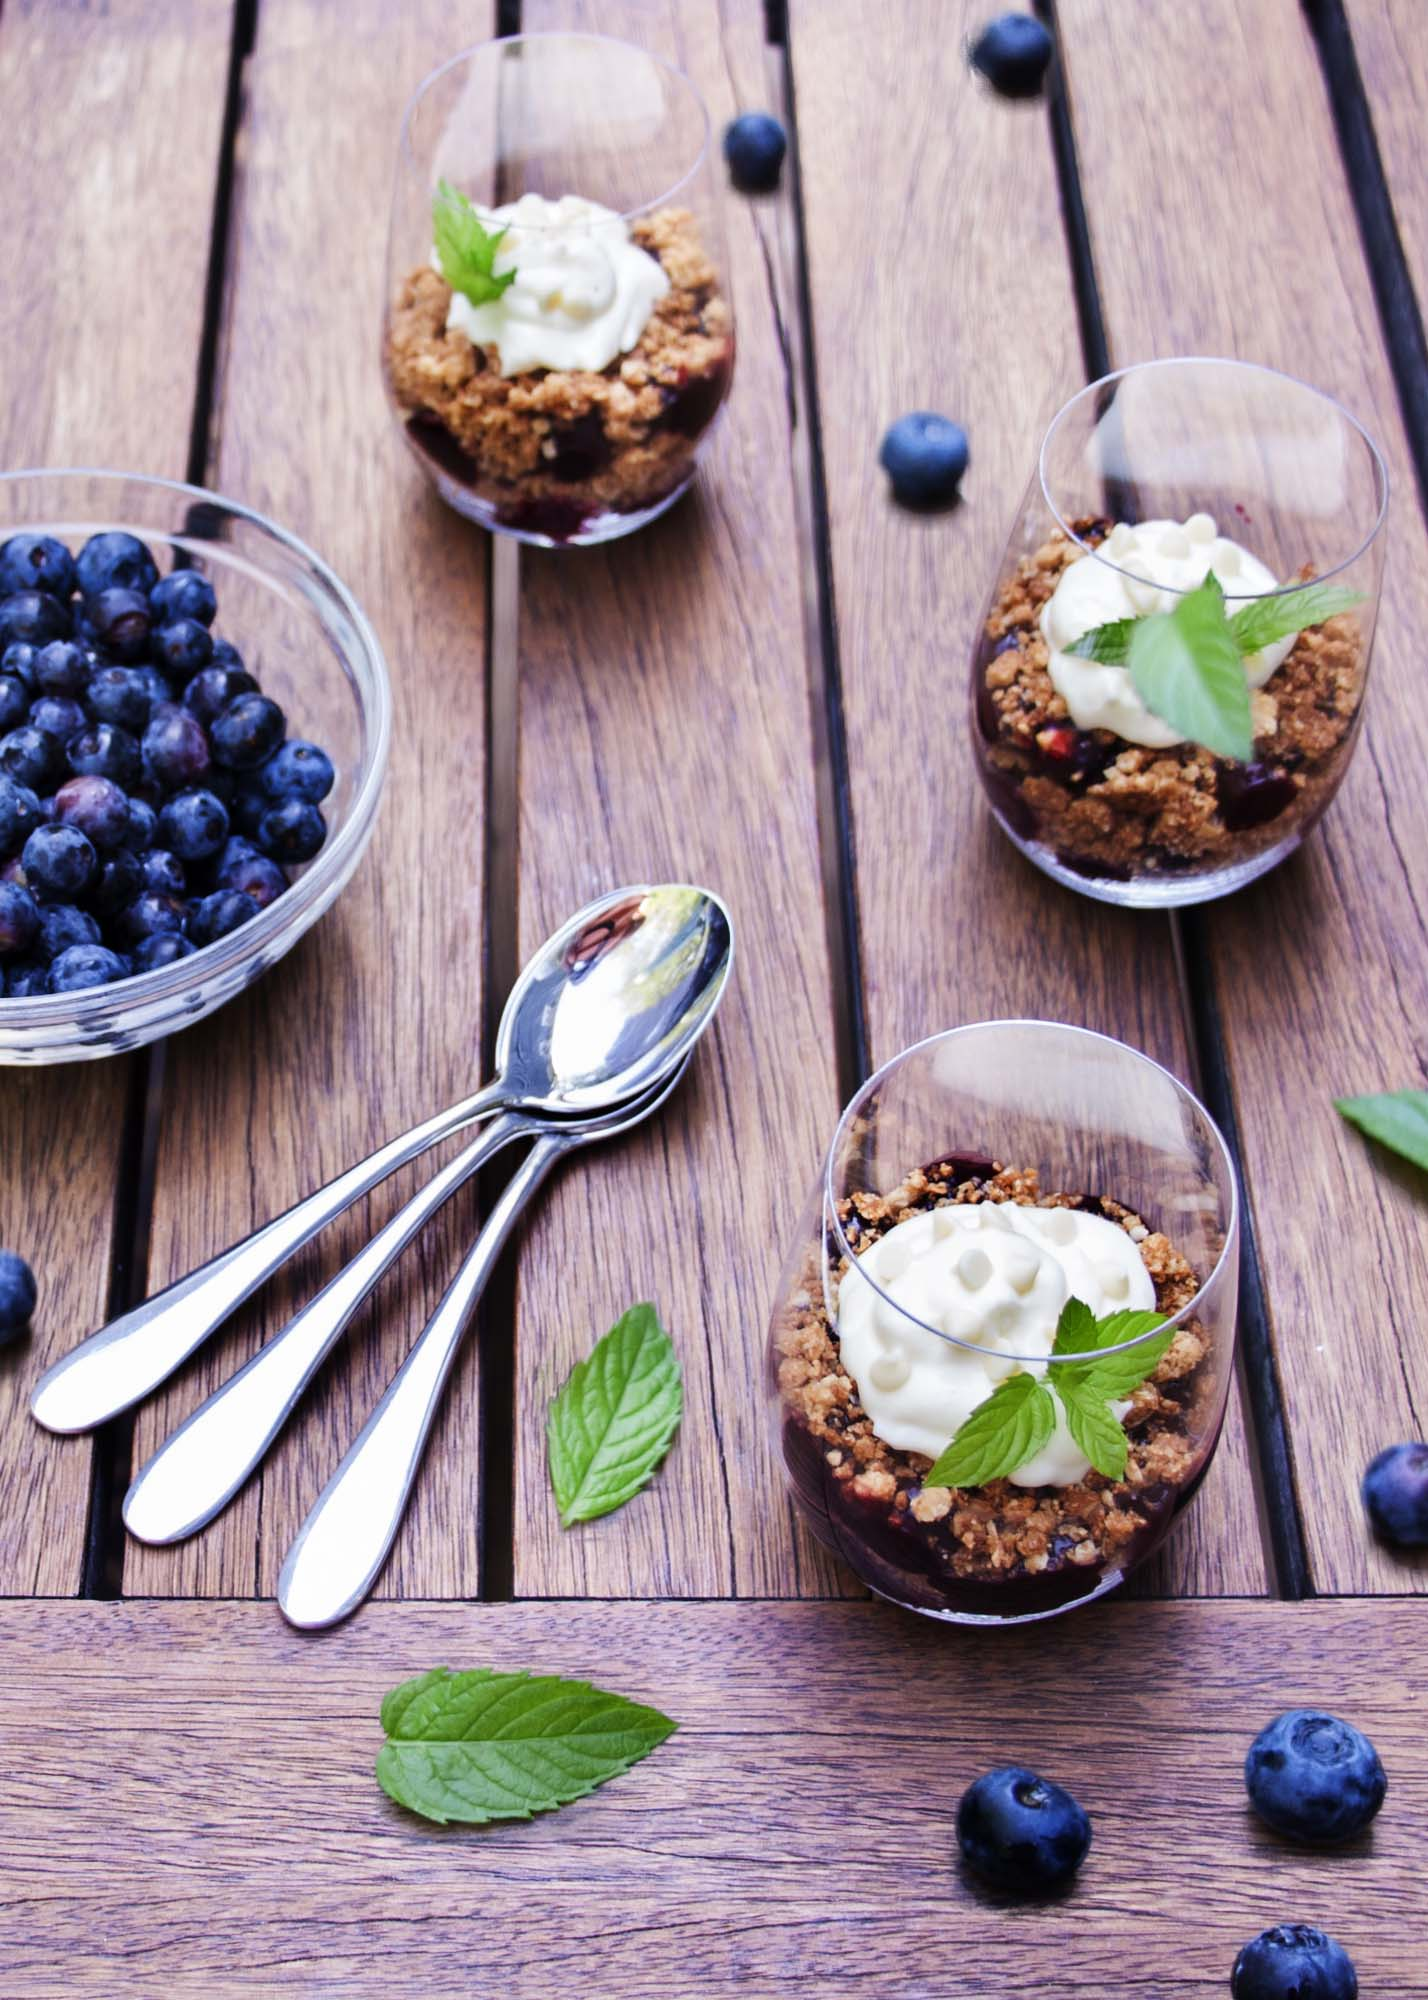 A table set with blueberry pie parfaits and spoons.